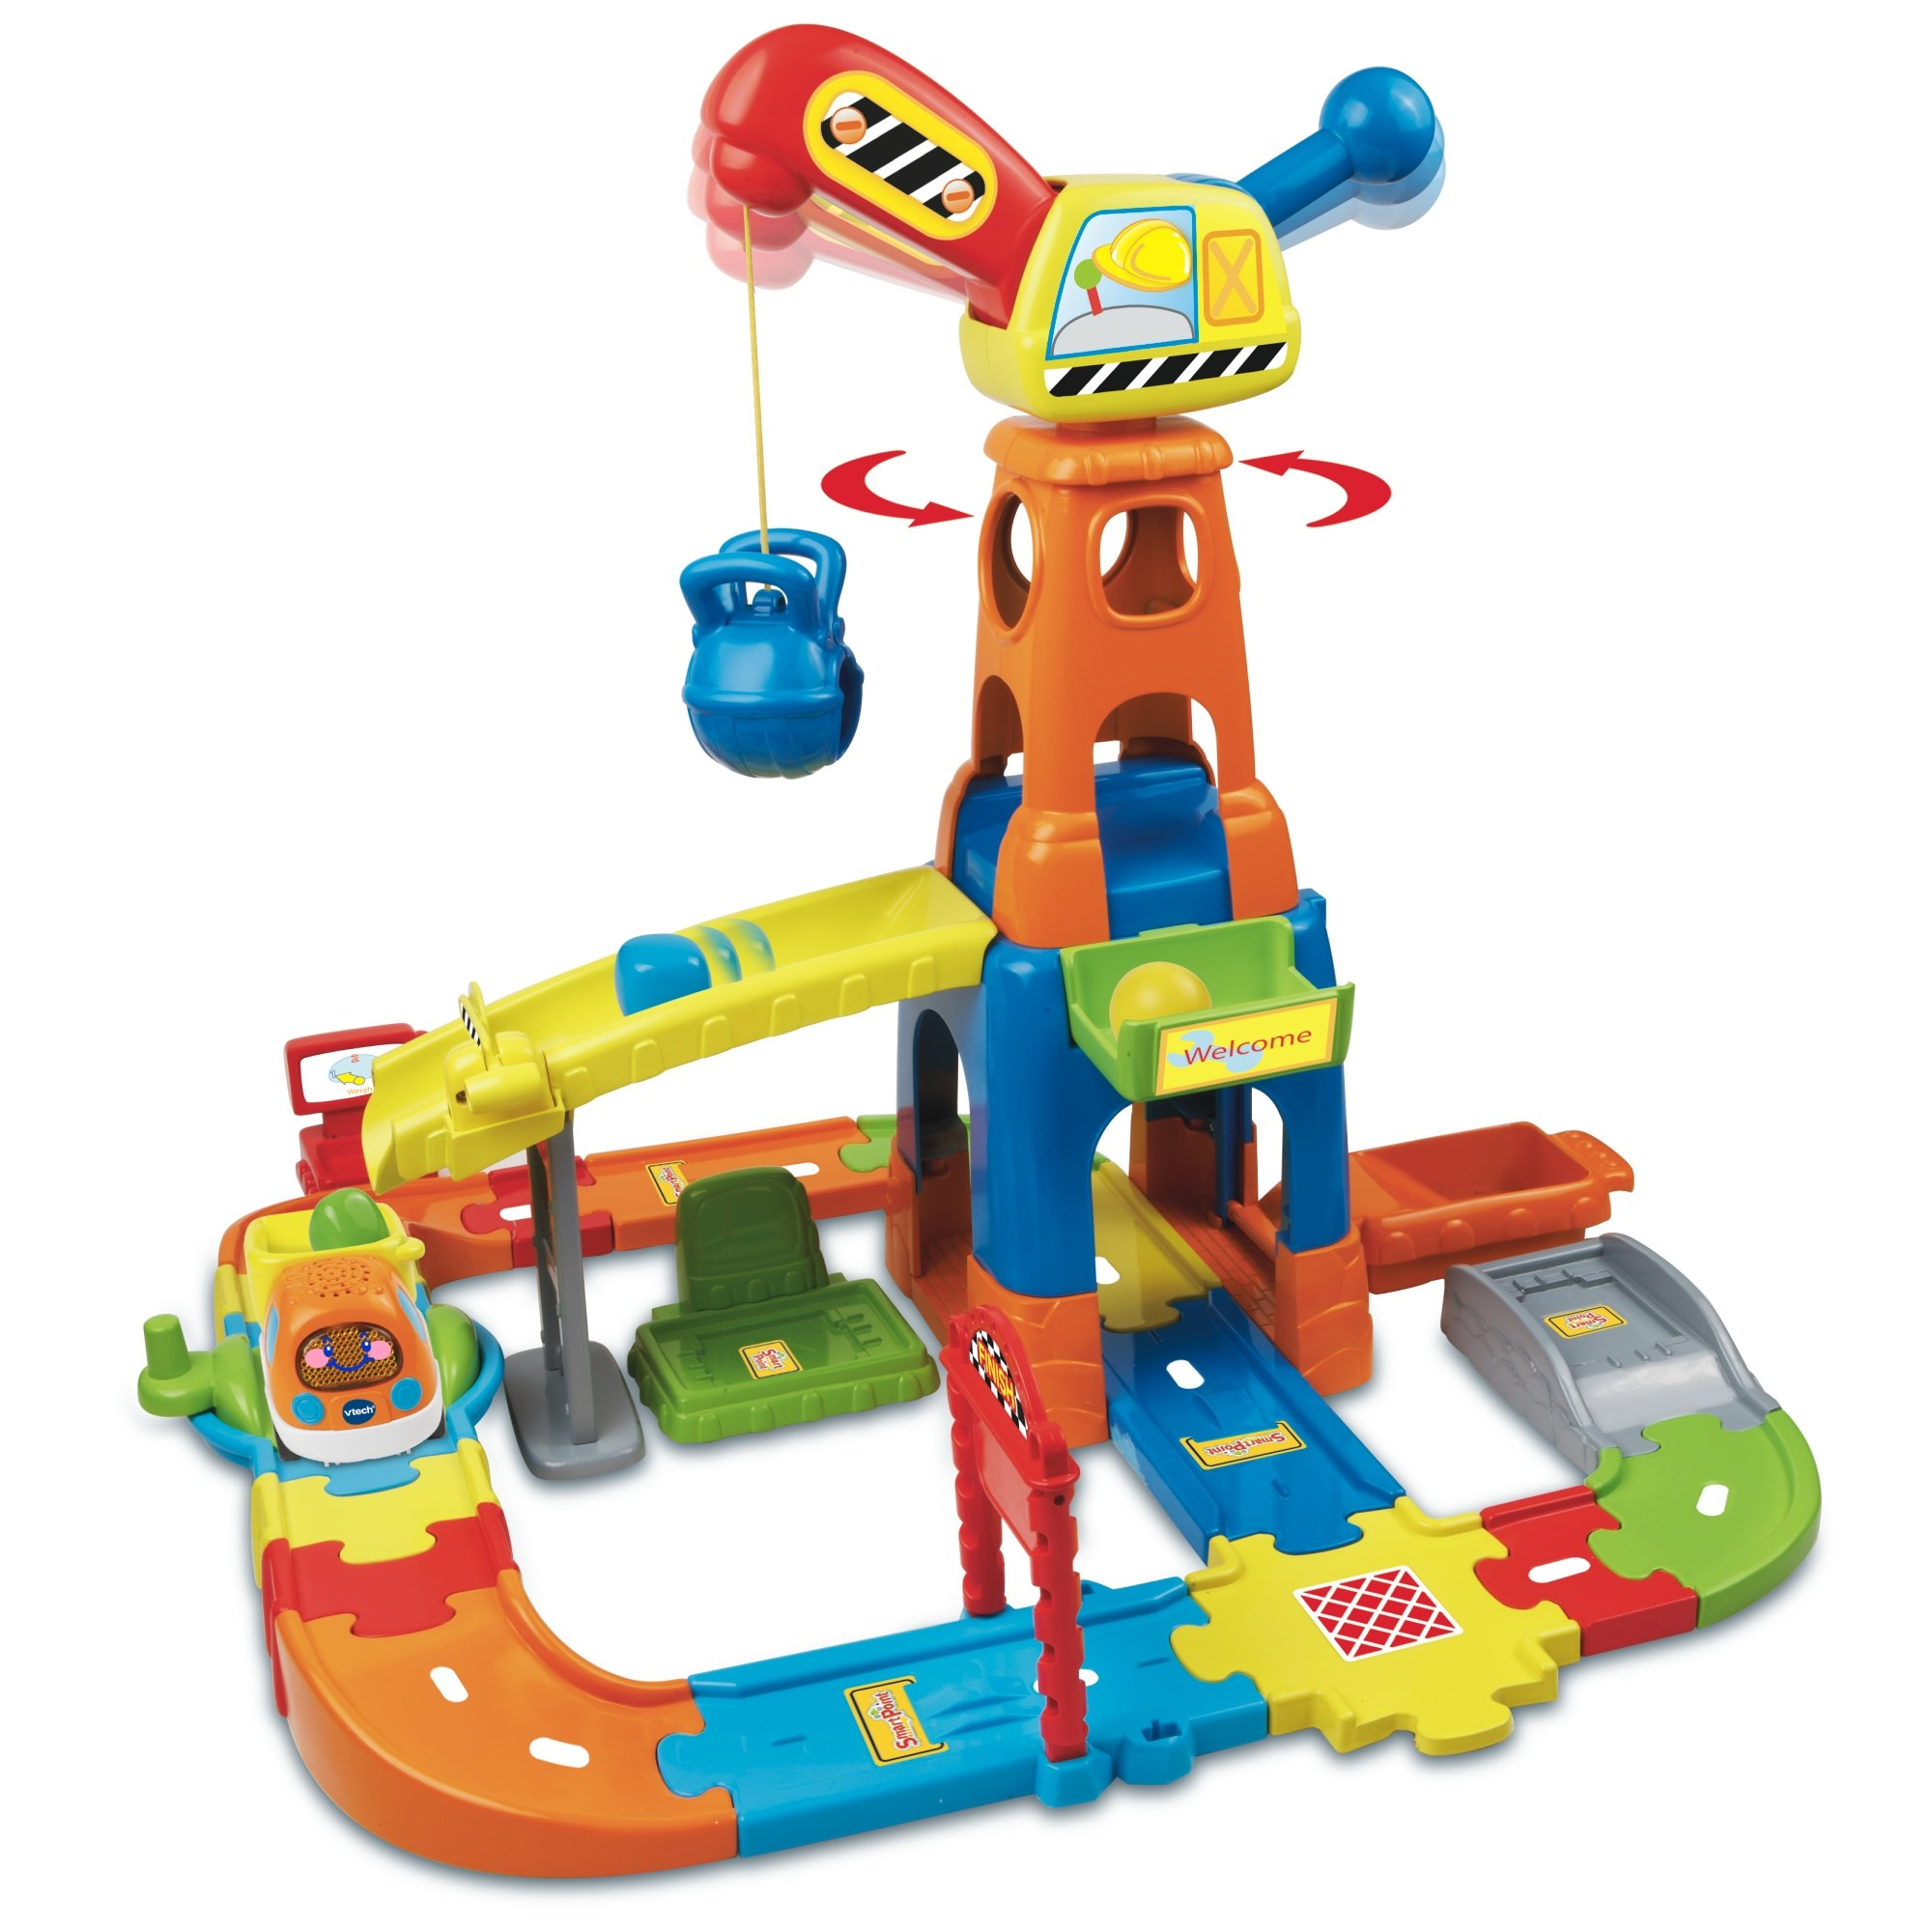 VTech TootToot Drivers Construction Set